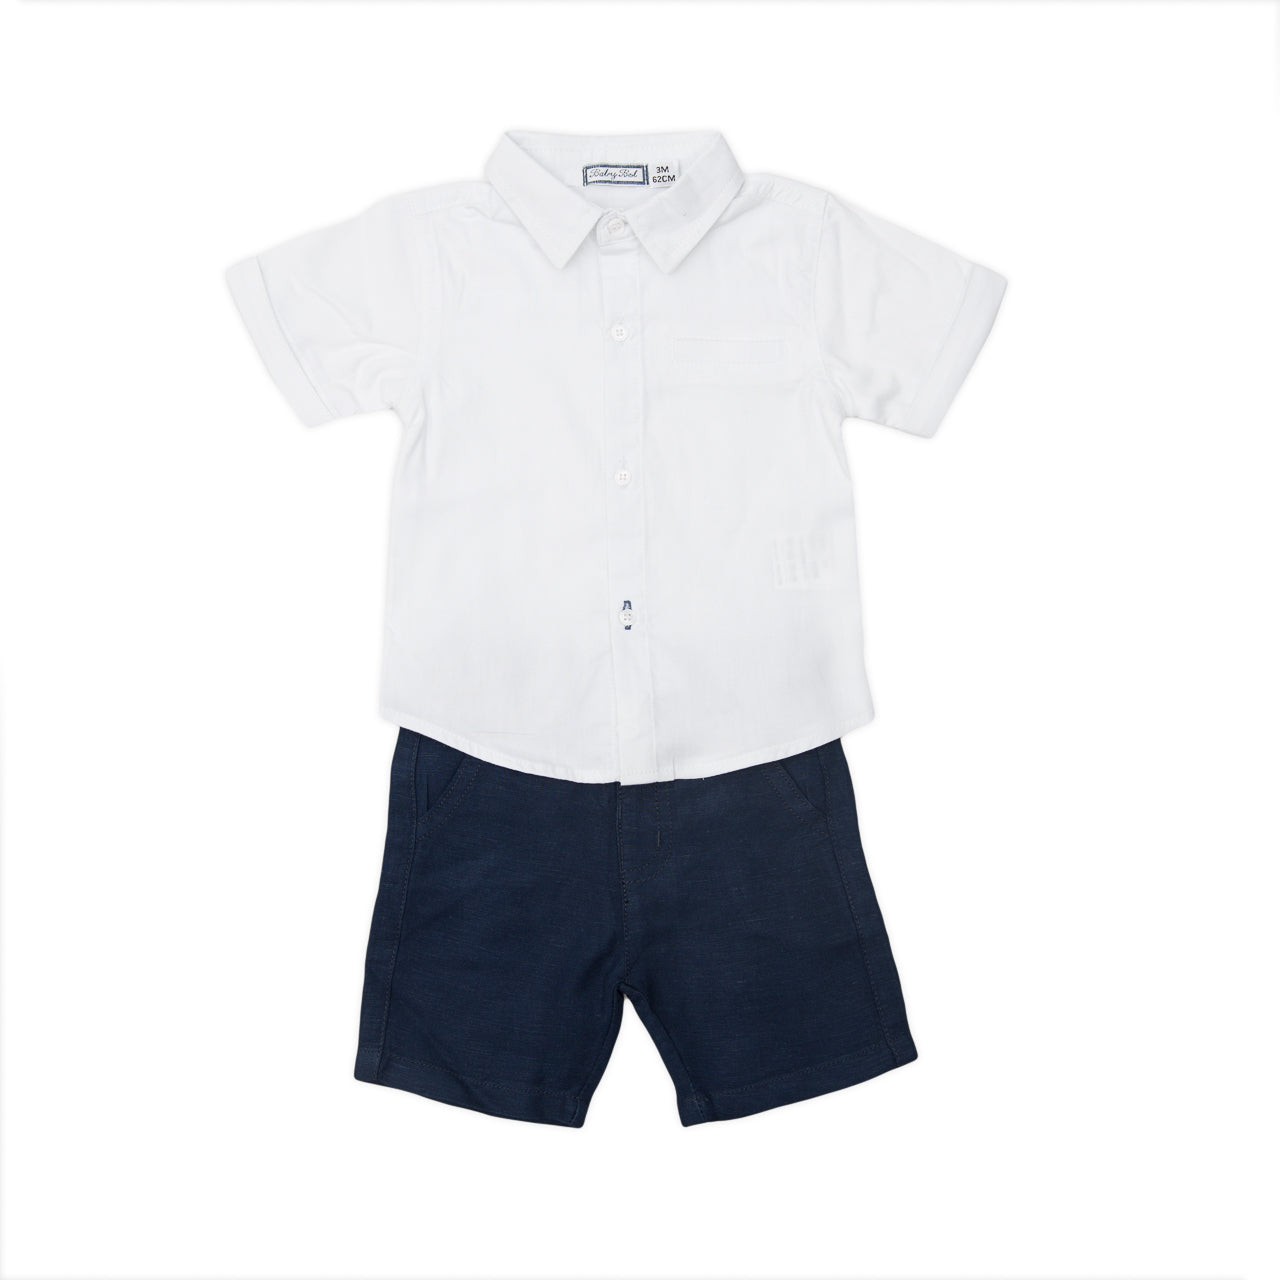 Babybol Navy & White Two Piece Set